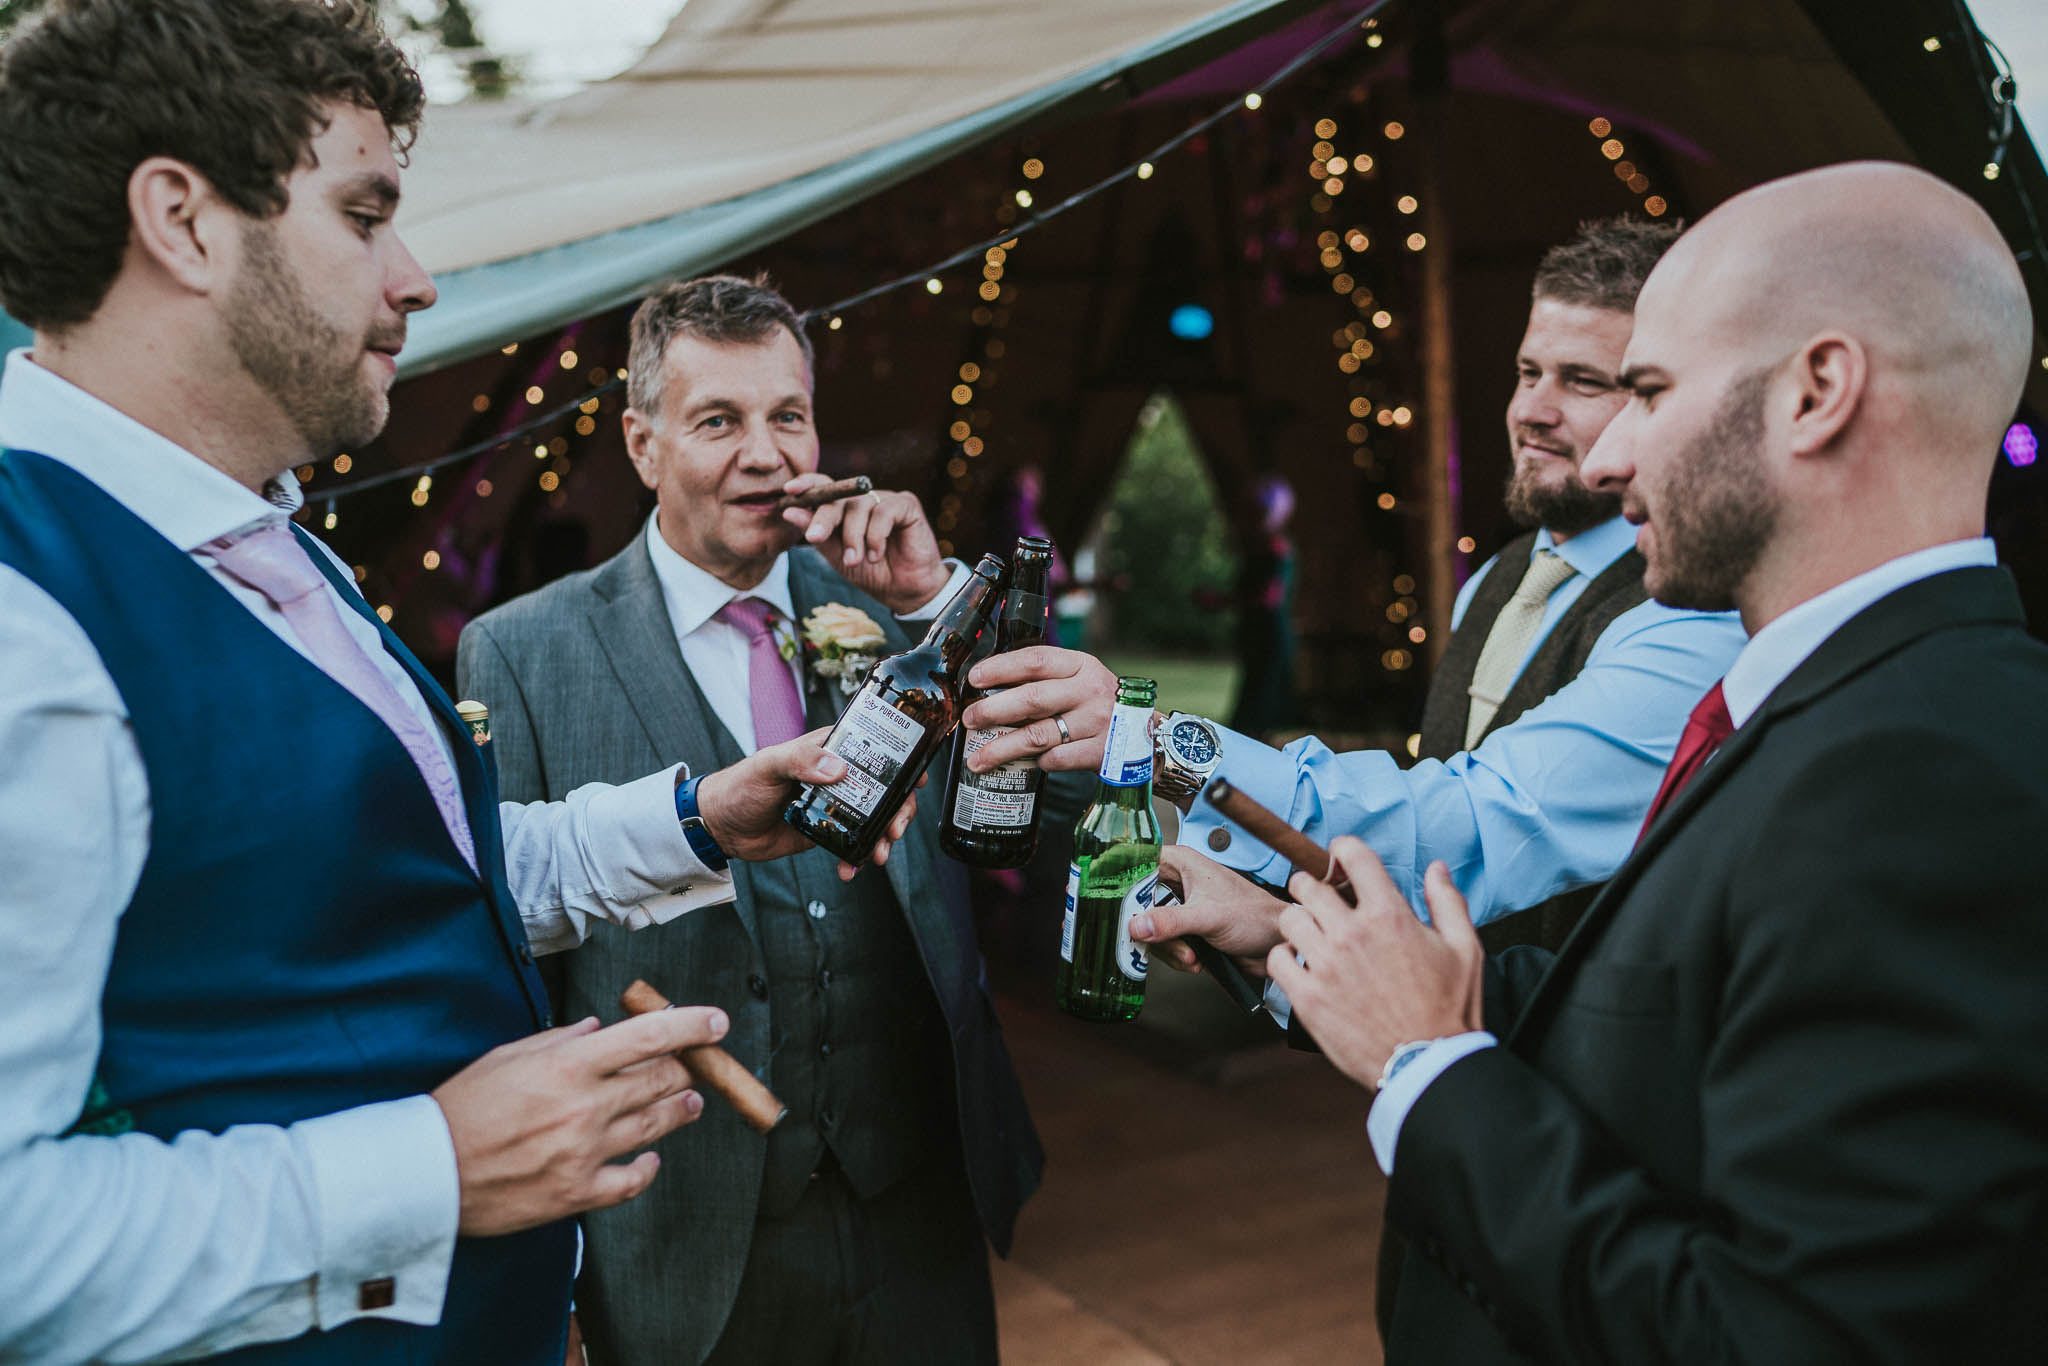 wedding-cigar-pictures